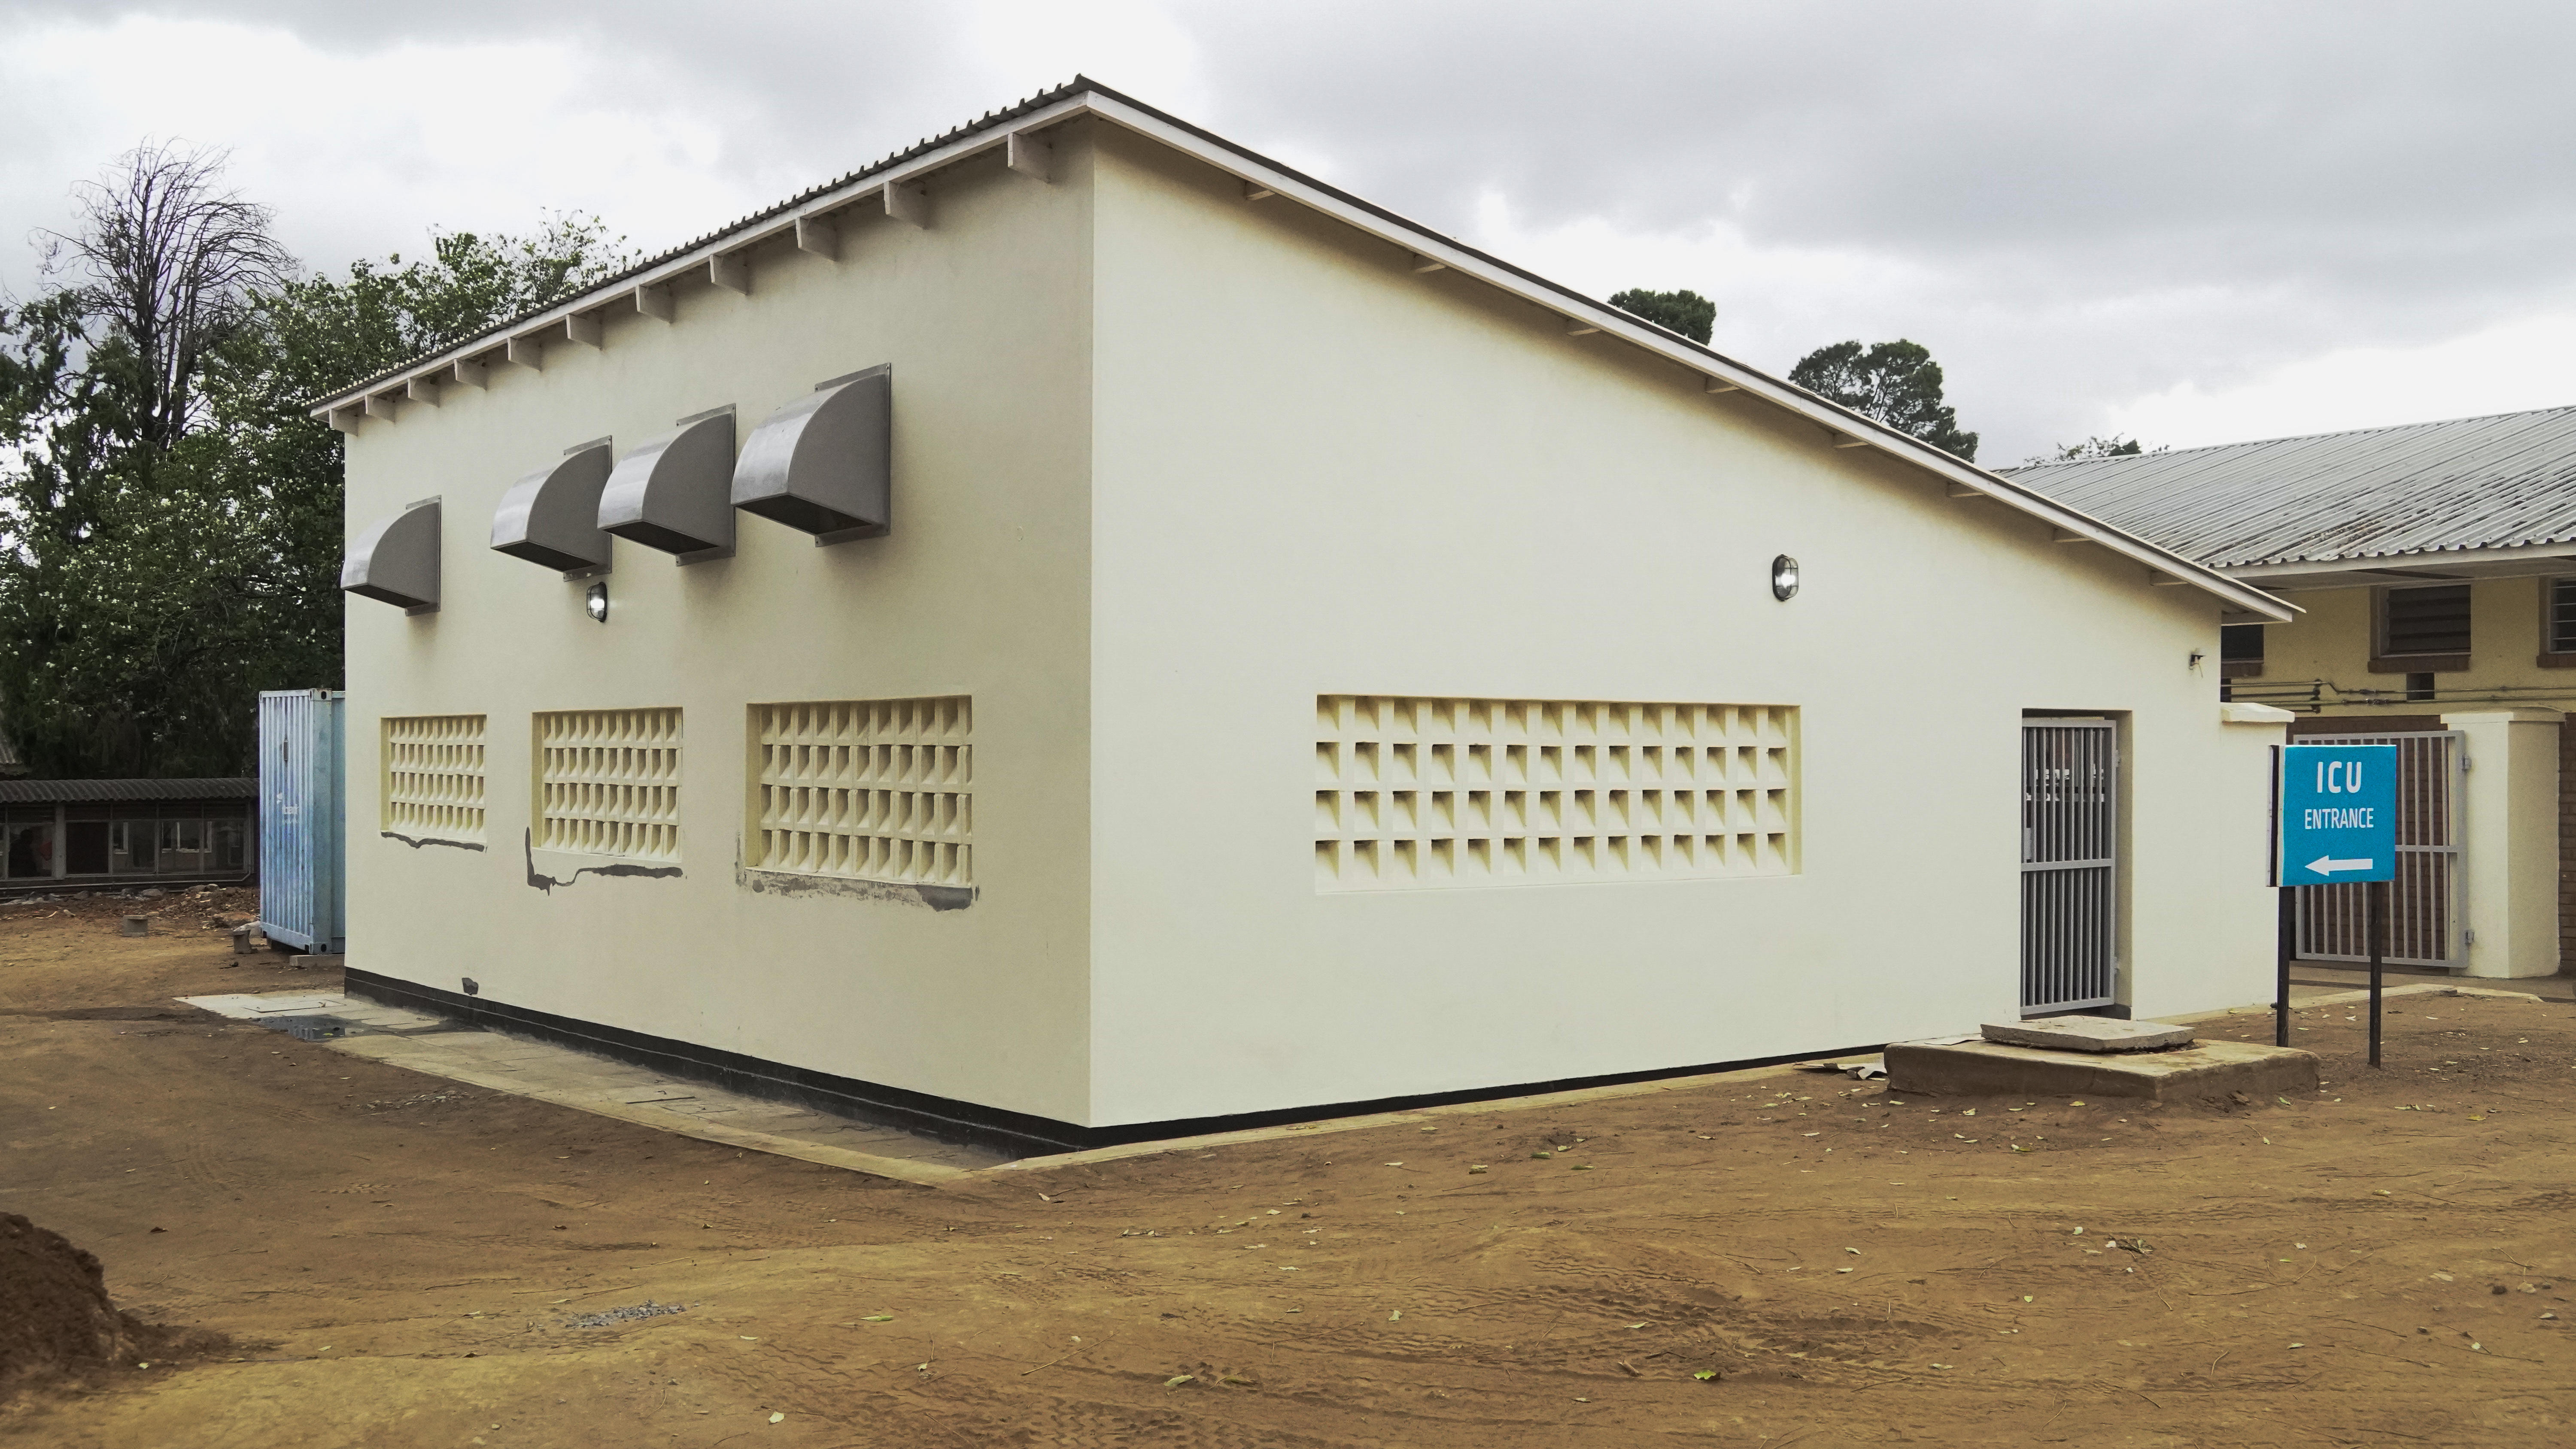 The oxygen plant next to Queen Elizabeth Hospital in Blantyre, Malawi. Photo credit: MLW